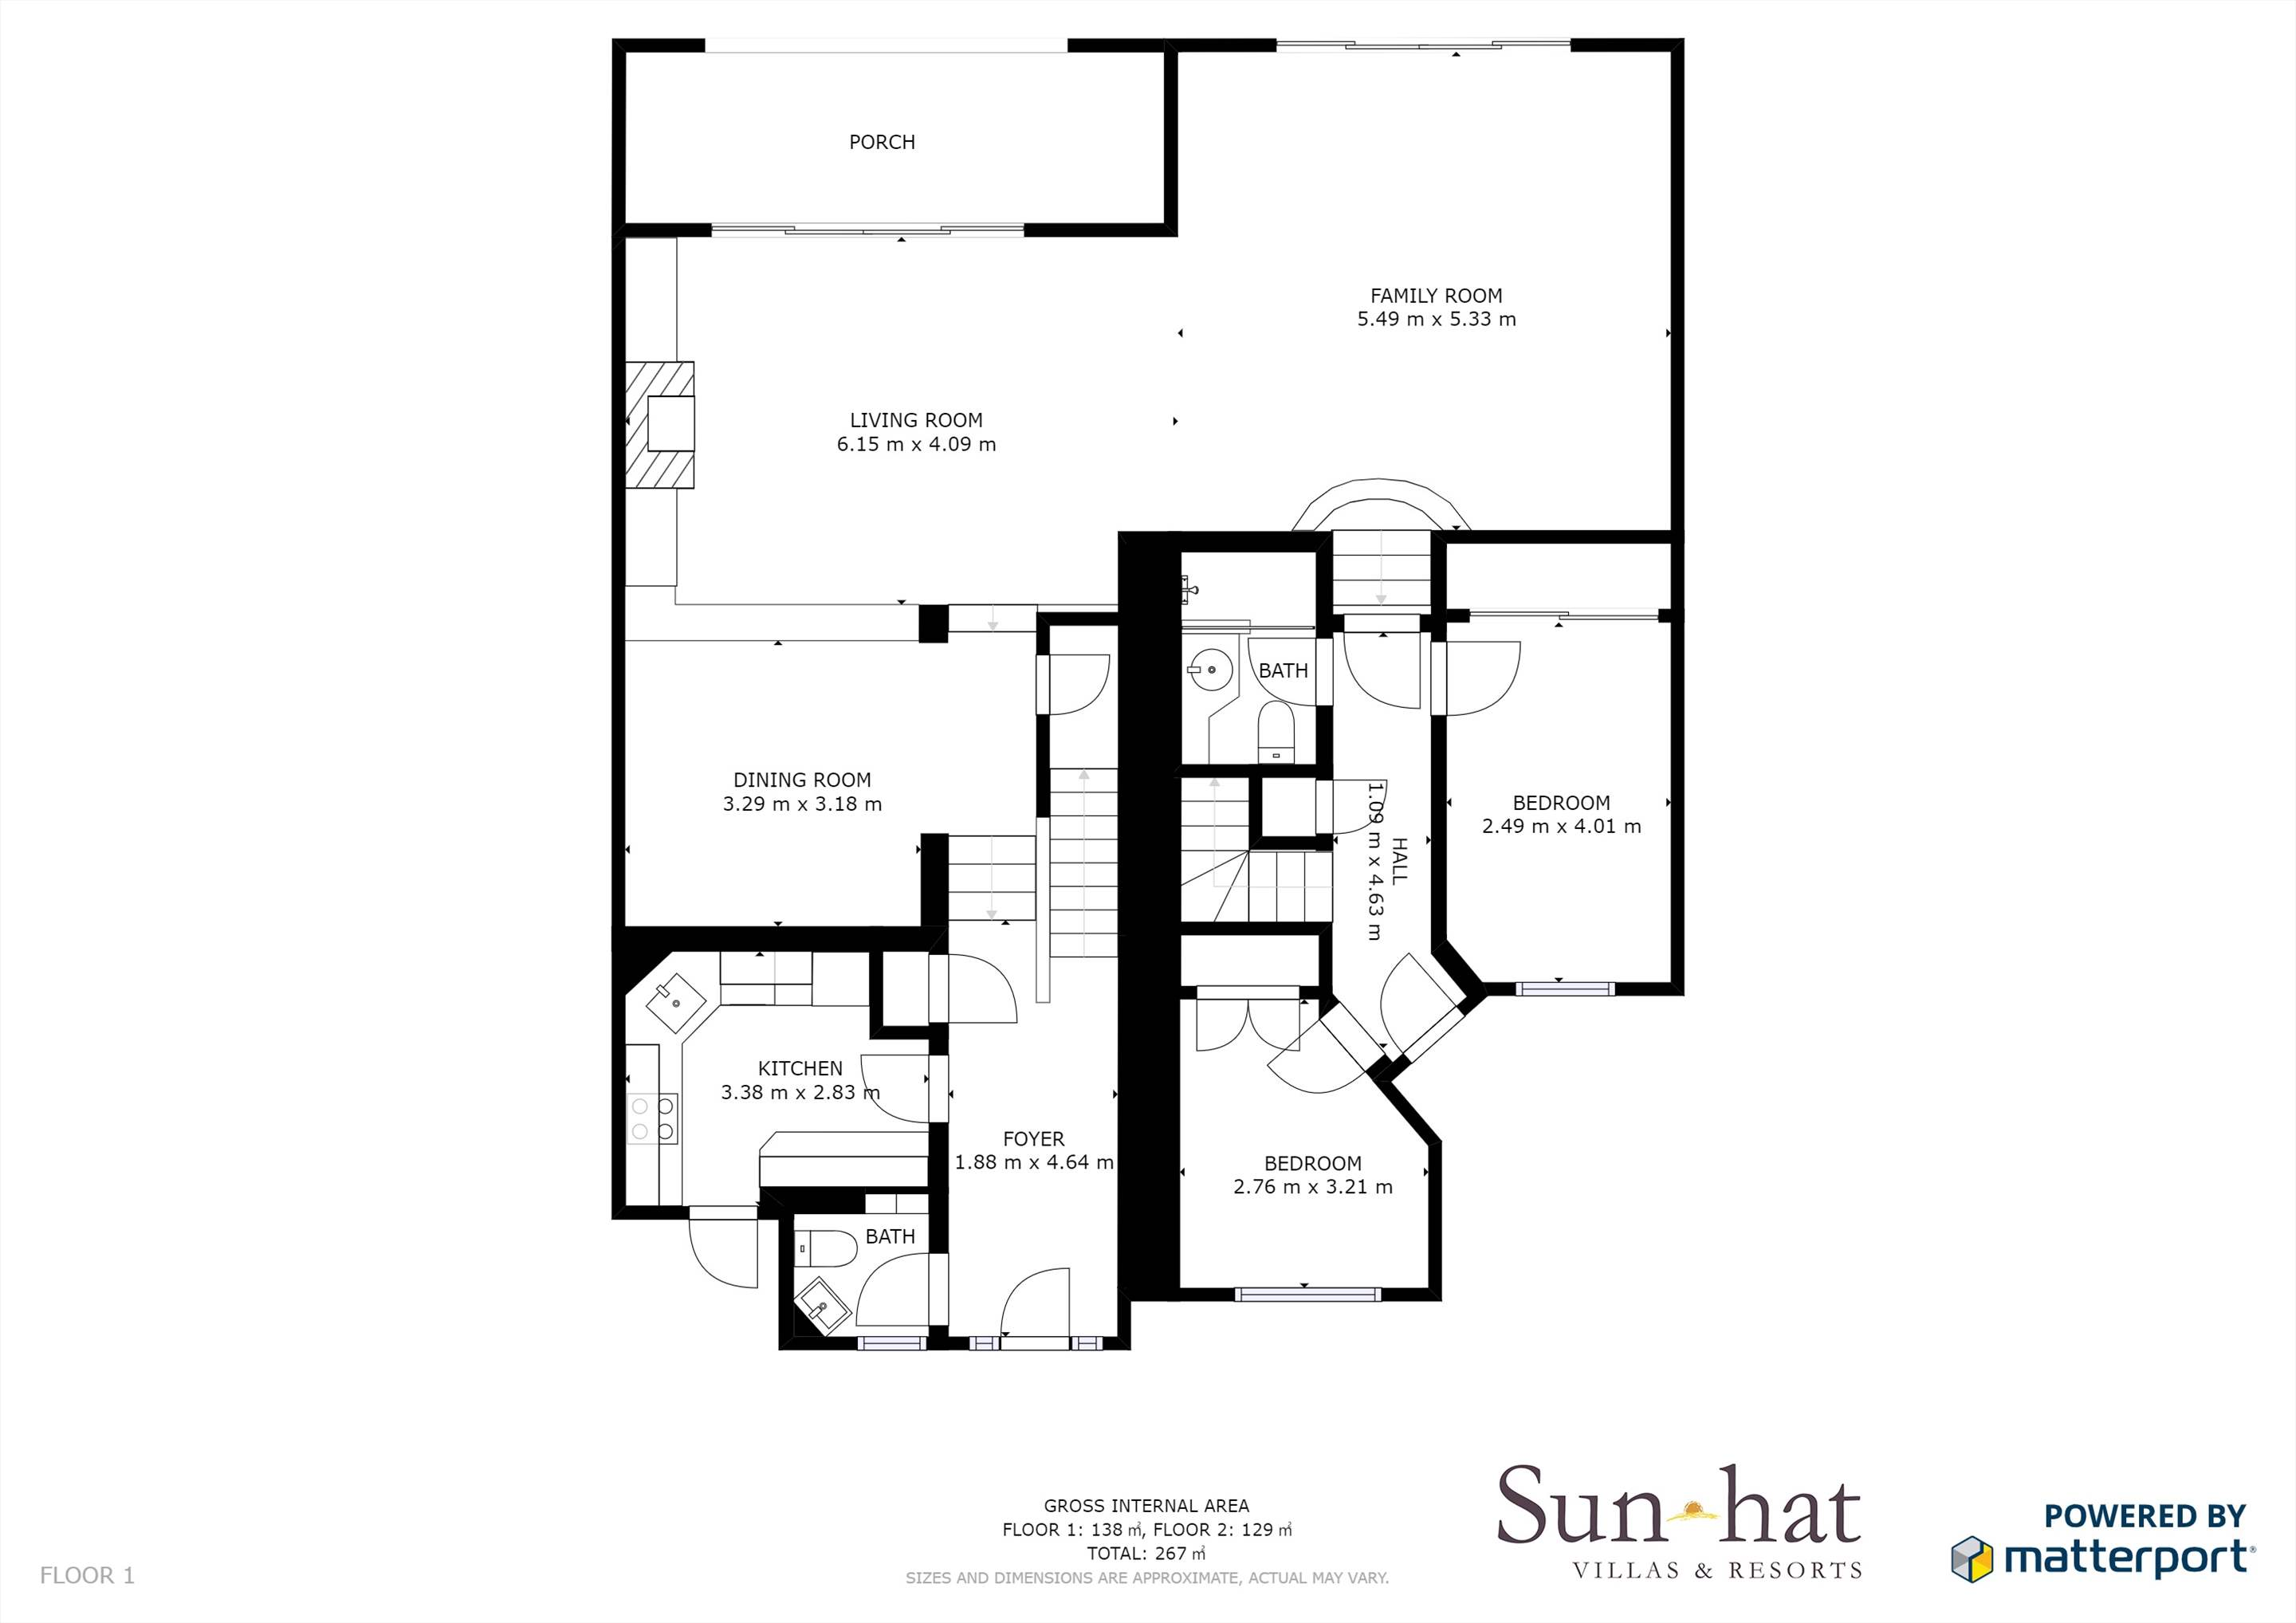 Villas Louisa, 4 Bedroom Floorplan #1